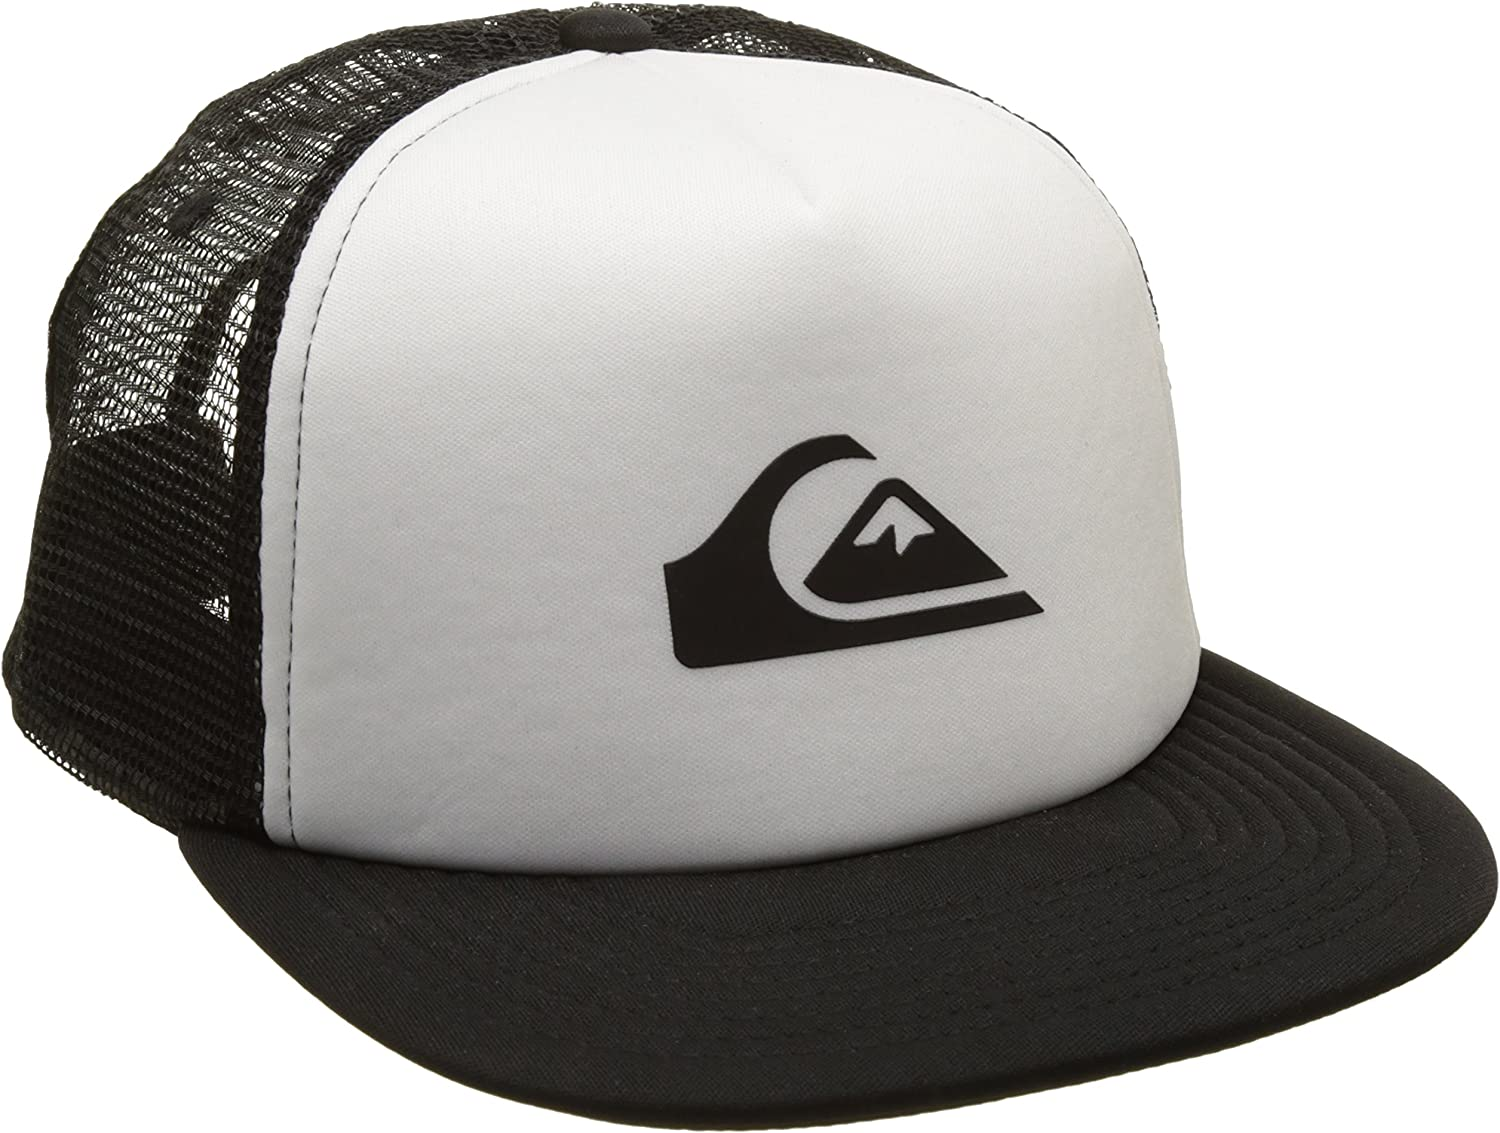 Quiksilver Addict Gorra, Hombre, Gorra, Snap Addict, Crema: Amazon ...